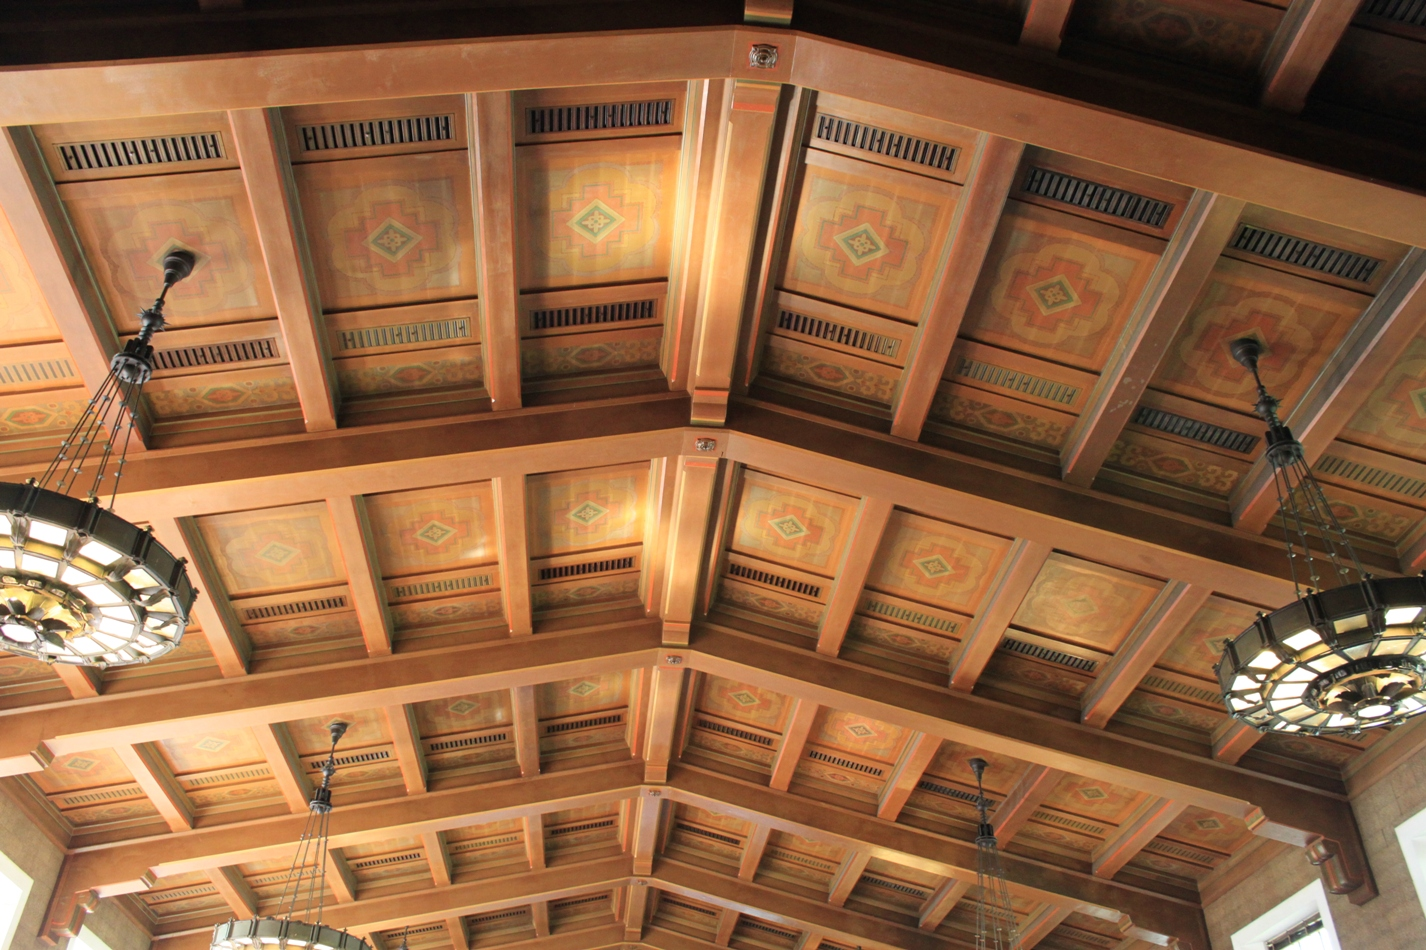 Union Station, Los Angeles: Last of the Great Railway